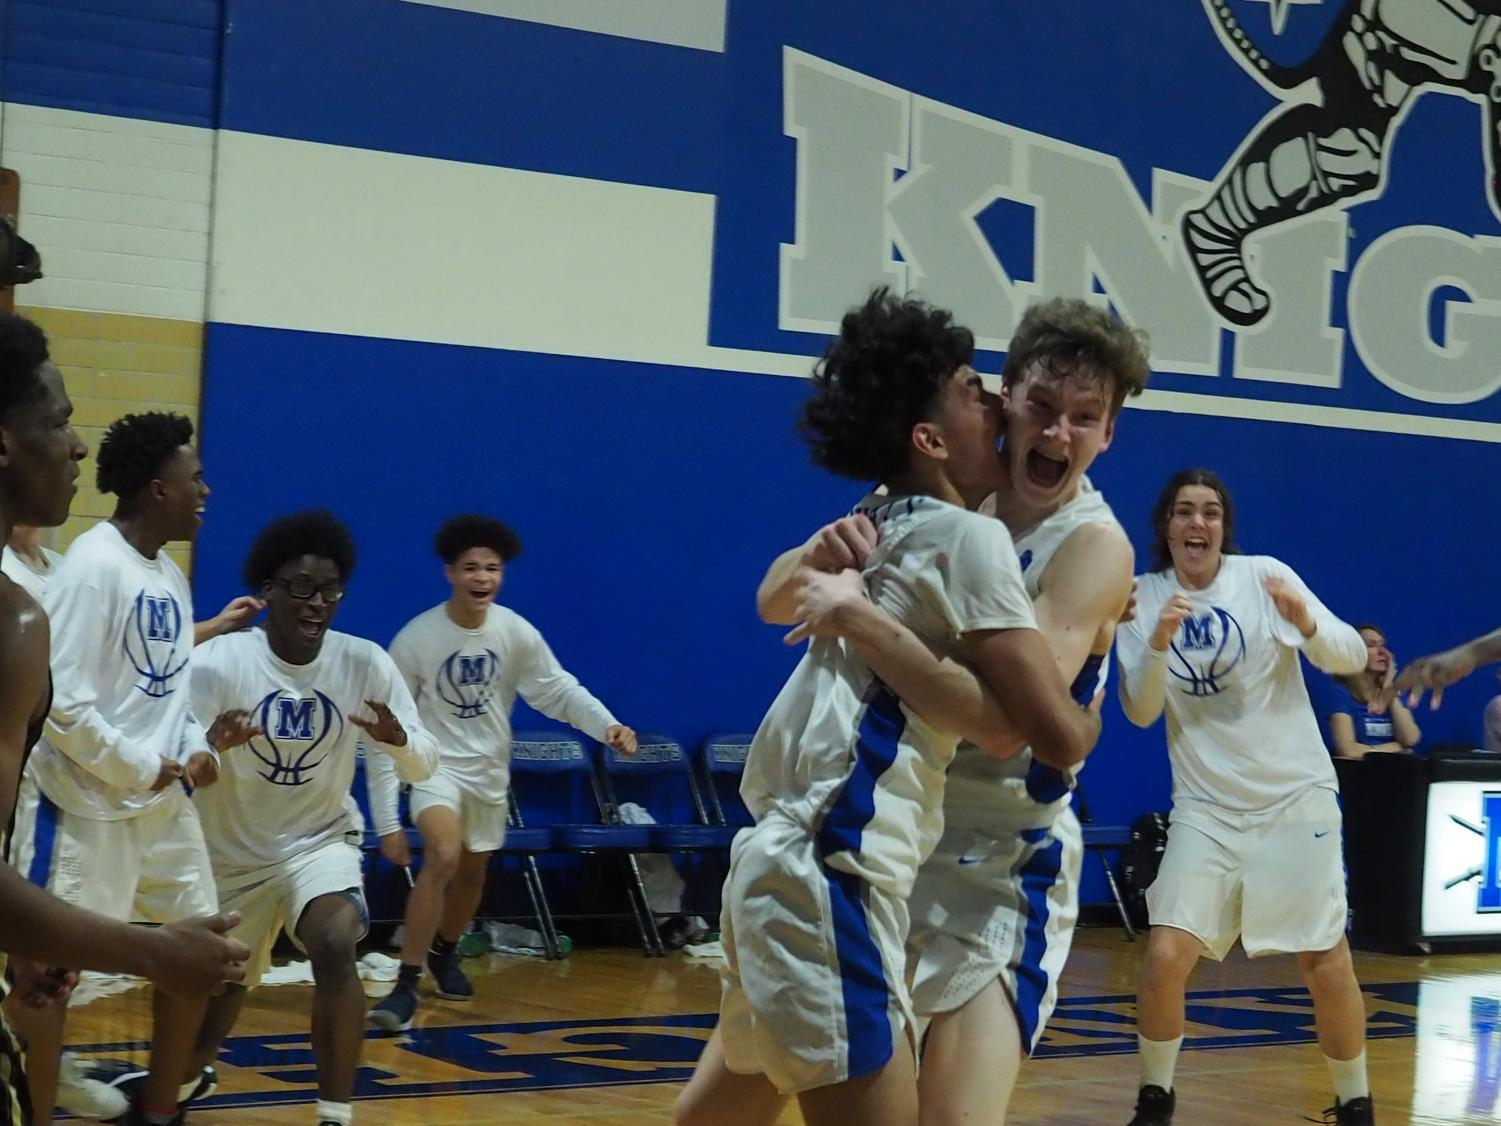 Rob Wade celebrates with teammate Albert Garza after sinking the game-winning shot on a put back as the second overtime period expired. It was the Knights' third shot on the game's final possession, and it dropped through the basket after the buzzer sounded while the ball was still in midair.